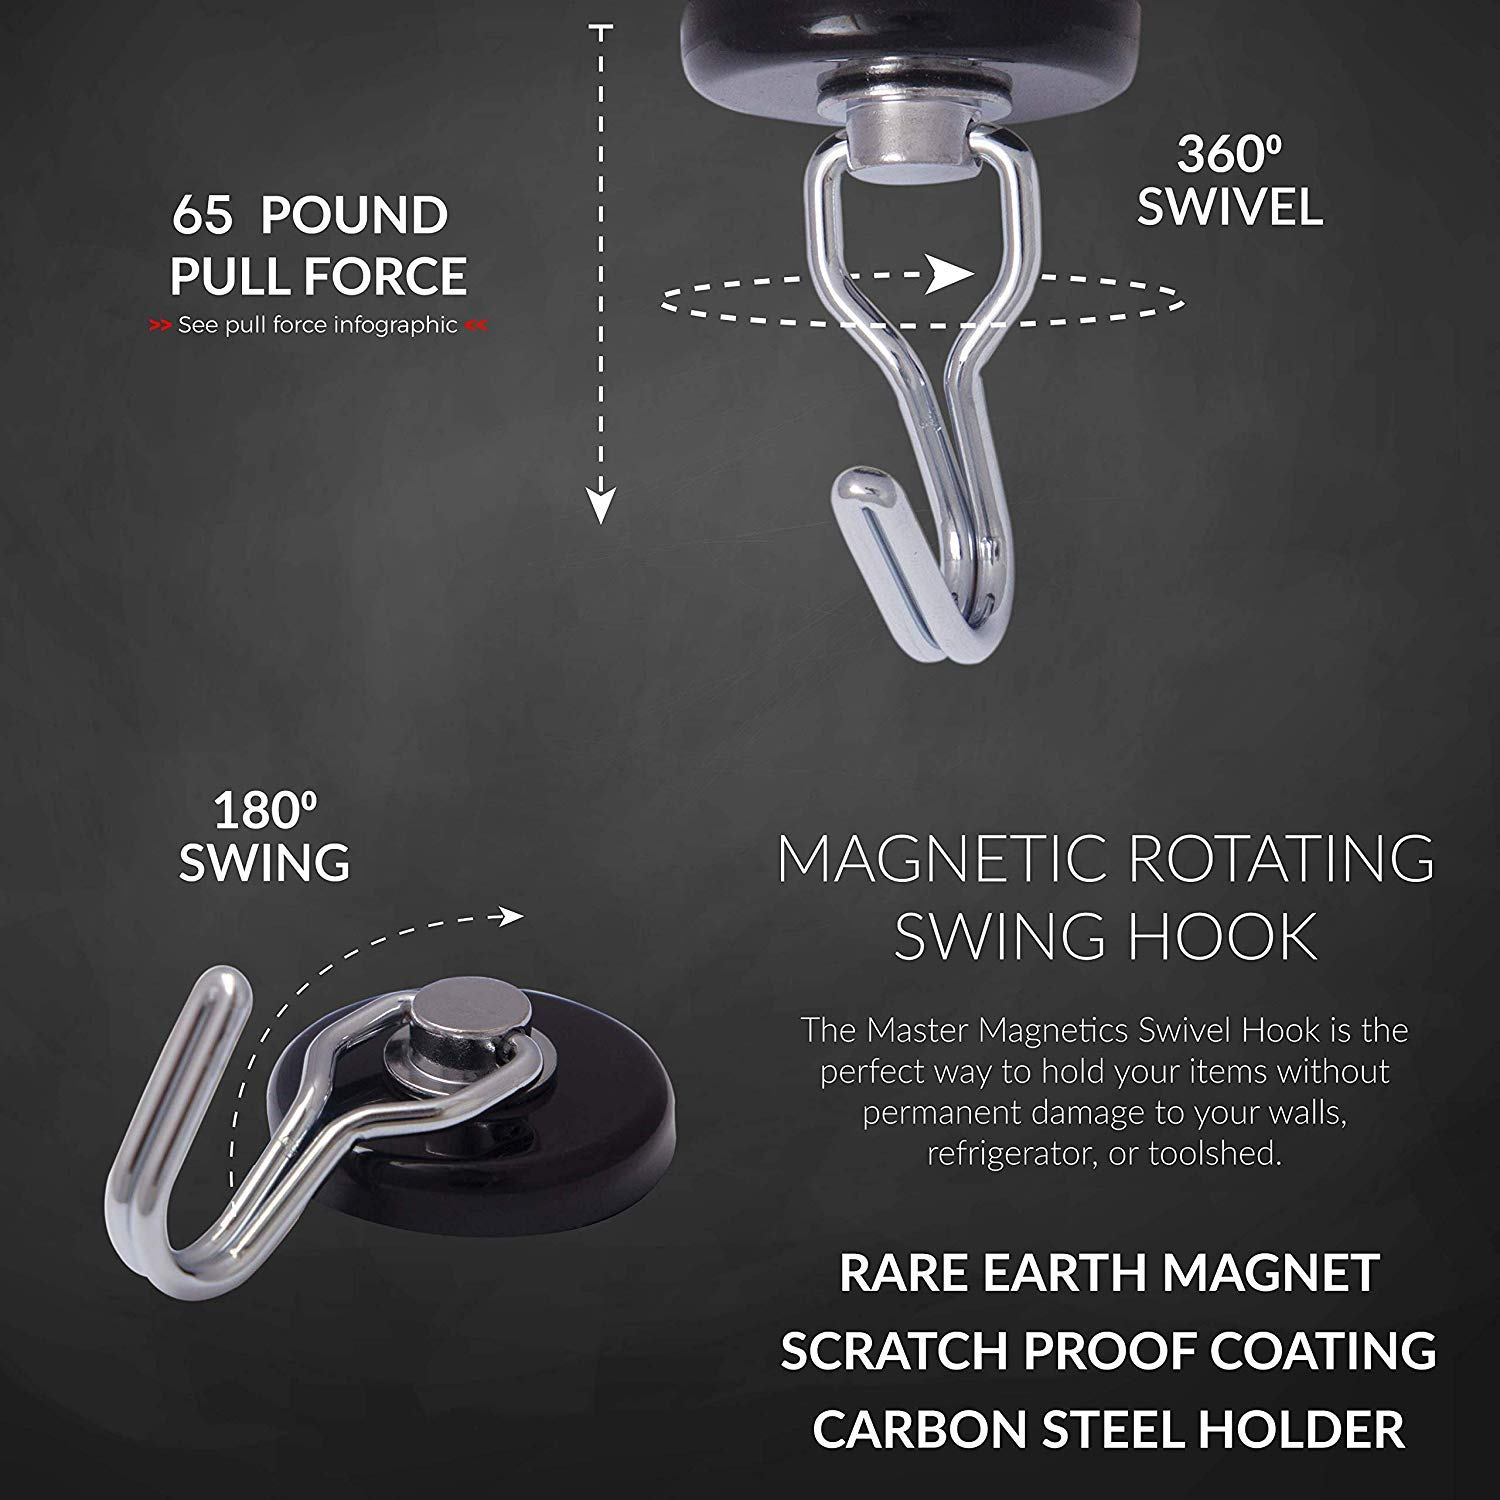 Master Magnetics 7580 Magnetic Hook Organizer Rotating Swing Hook 65 Pound Pull Force 1.47Diameter 0.54Thick Black, Sold as 3 Pack by Master Magnetics (Image #5)